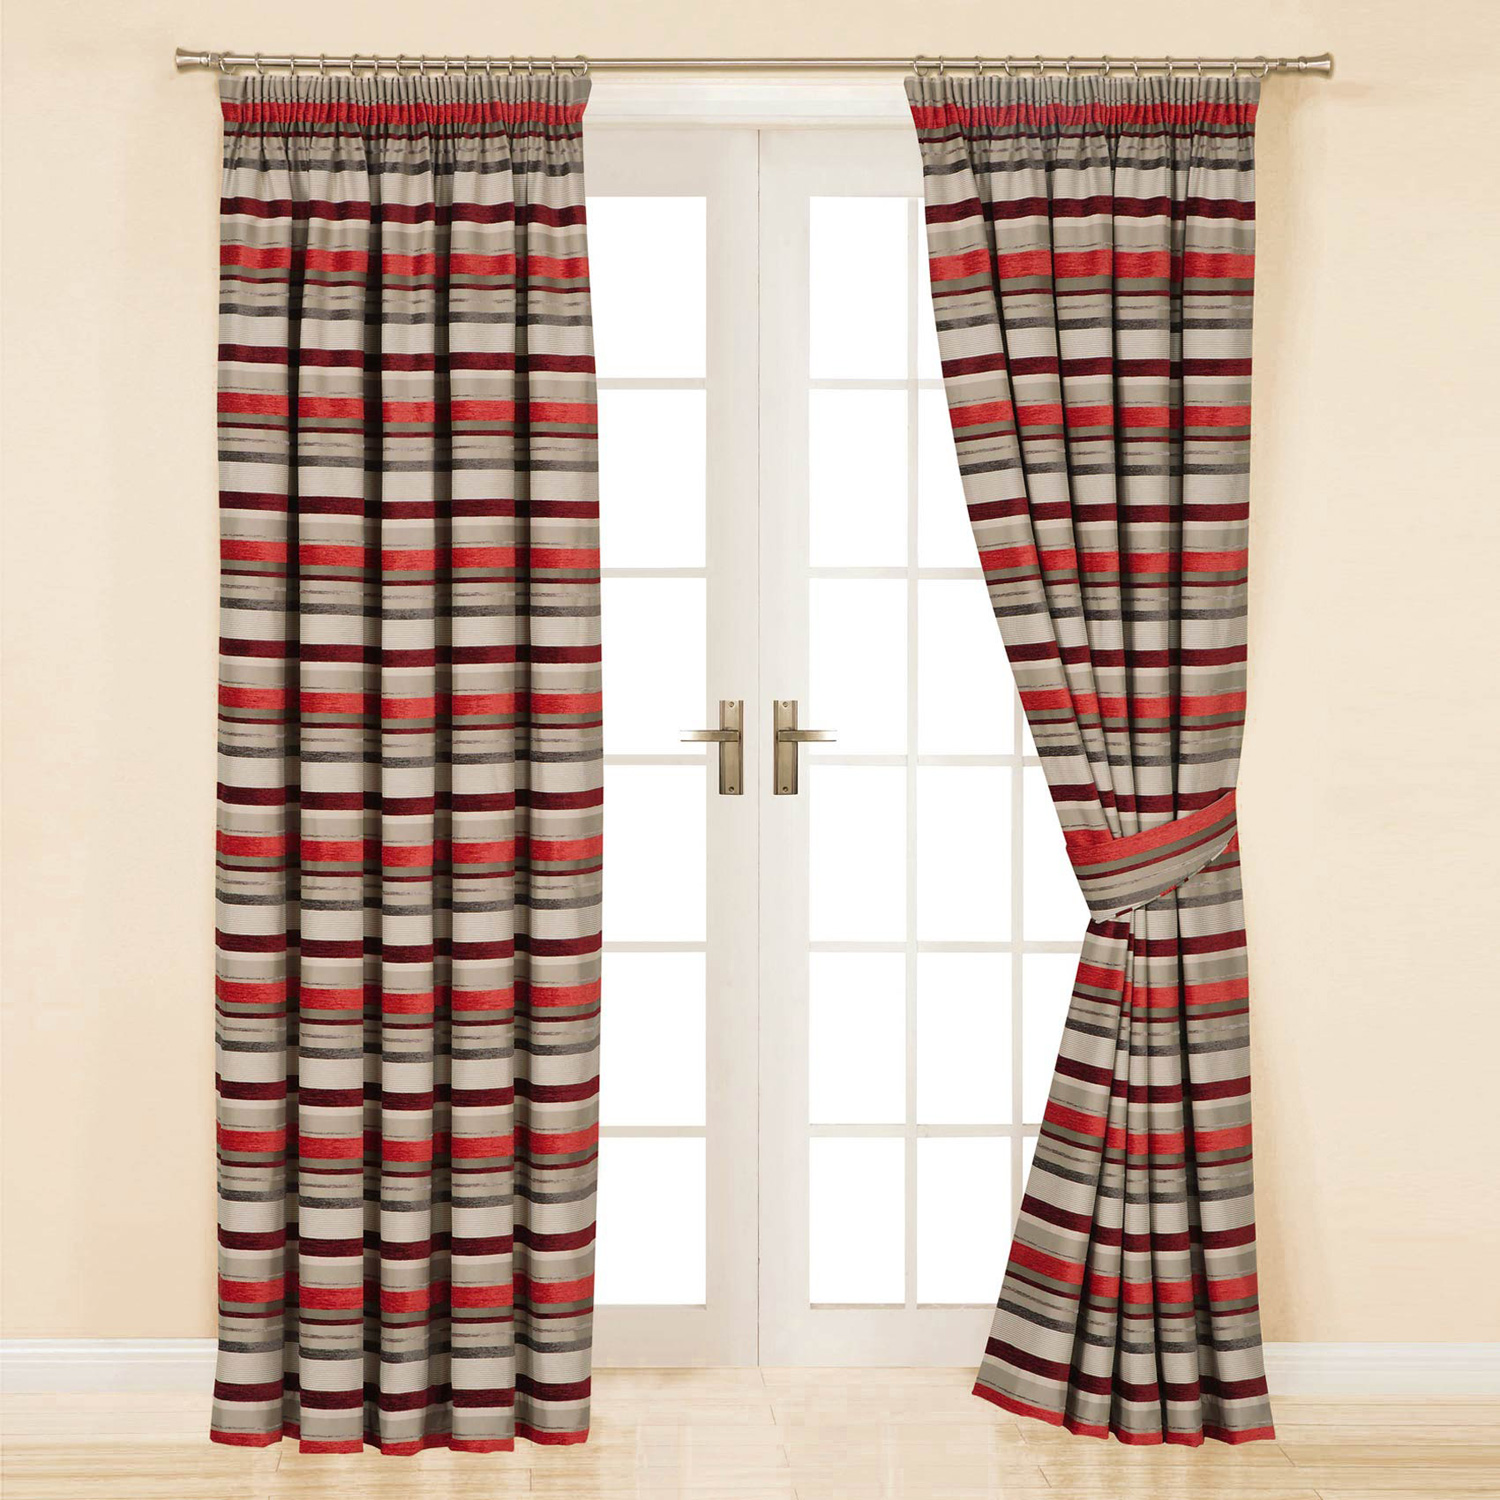 Appealing striped curtains with long curtain and nightlamps also single sofa combined with fluufy rug and lowes mini table